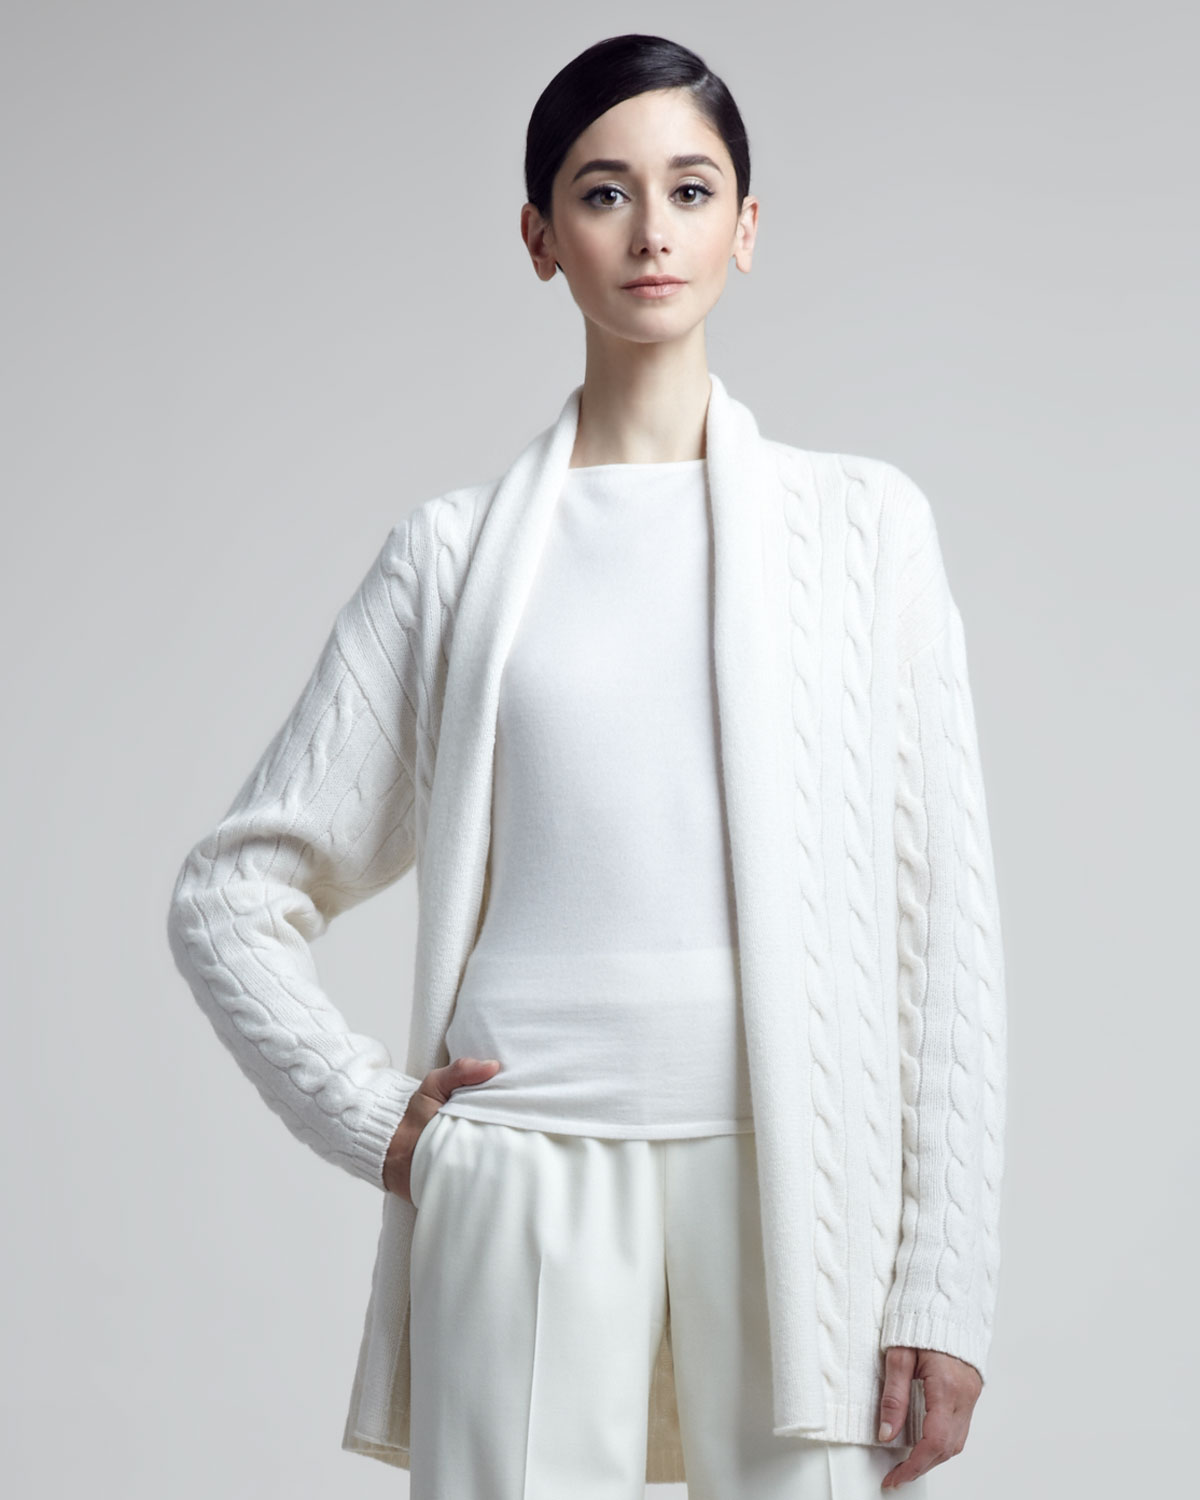 Ralph lauren black label Cableknit Cashmere Cardigan in White | Lyst